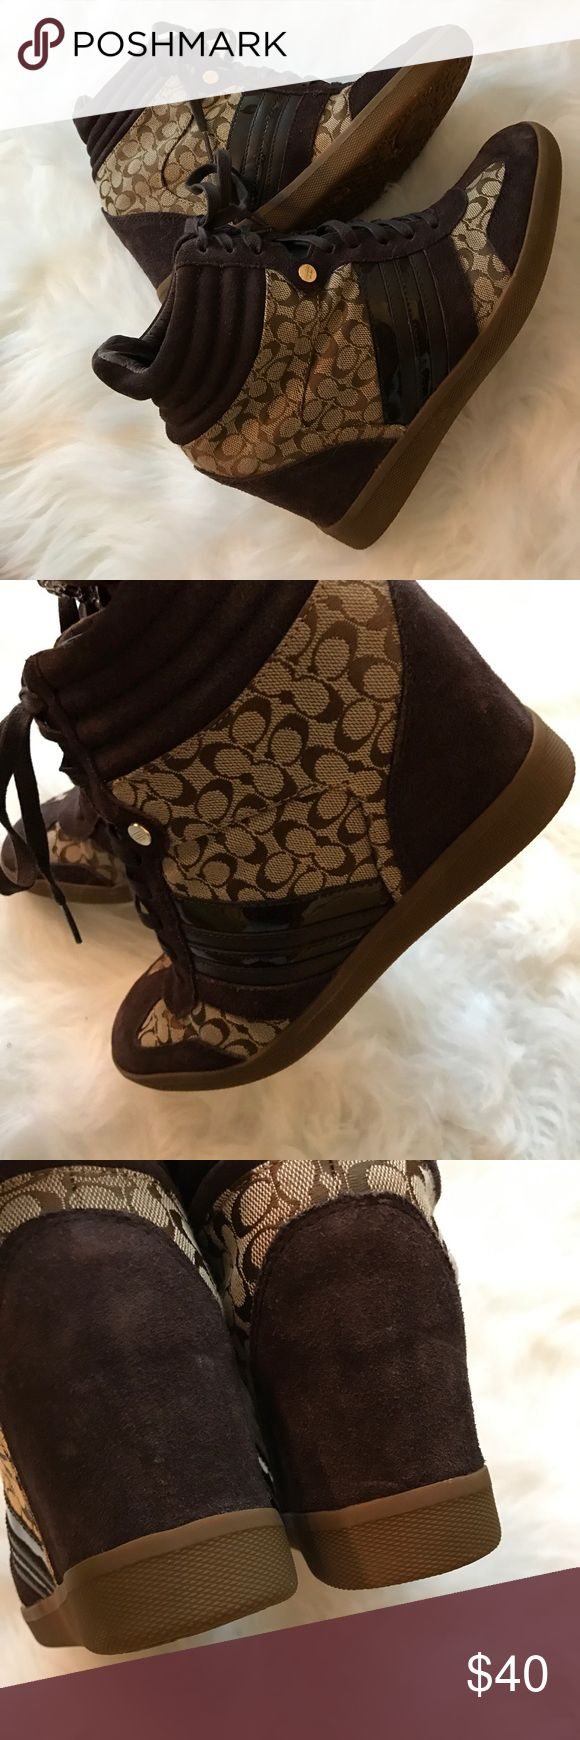 💥💥Love their COACH  cuties 👟💥💥 Coach Alara Signature Jacquard & Suede Hidden Wedge Sneakers, (Khaki/Chestnut) Coach Shoes Sneakers